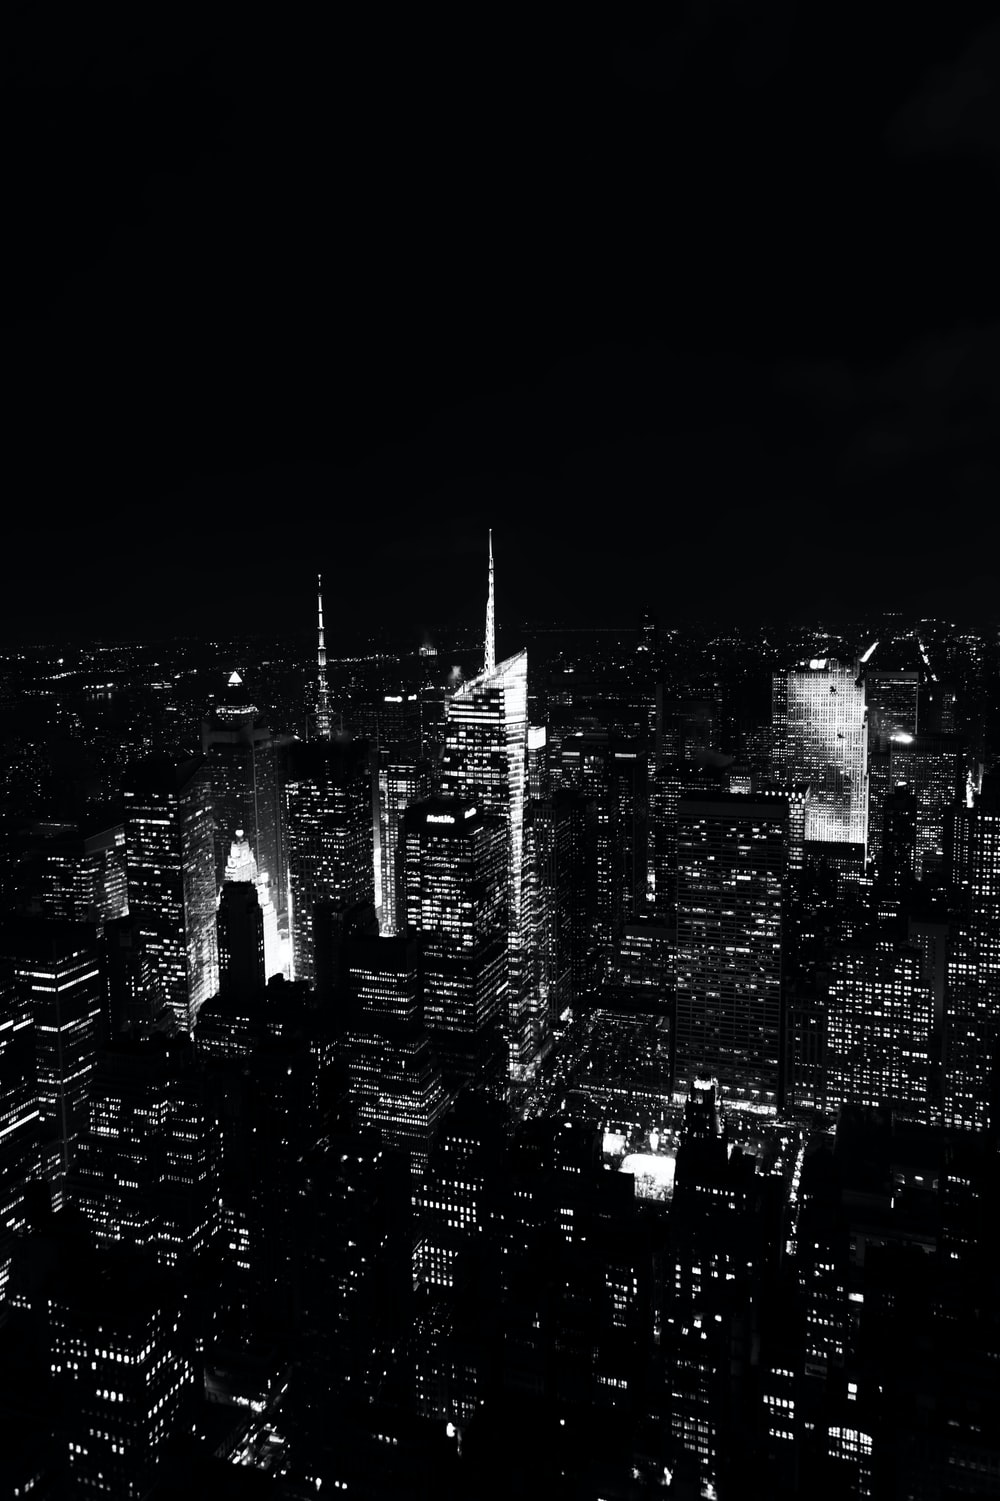 A Black And White Photograph Of Cityscape With Urban Skyscrapers